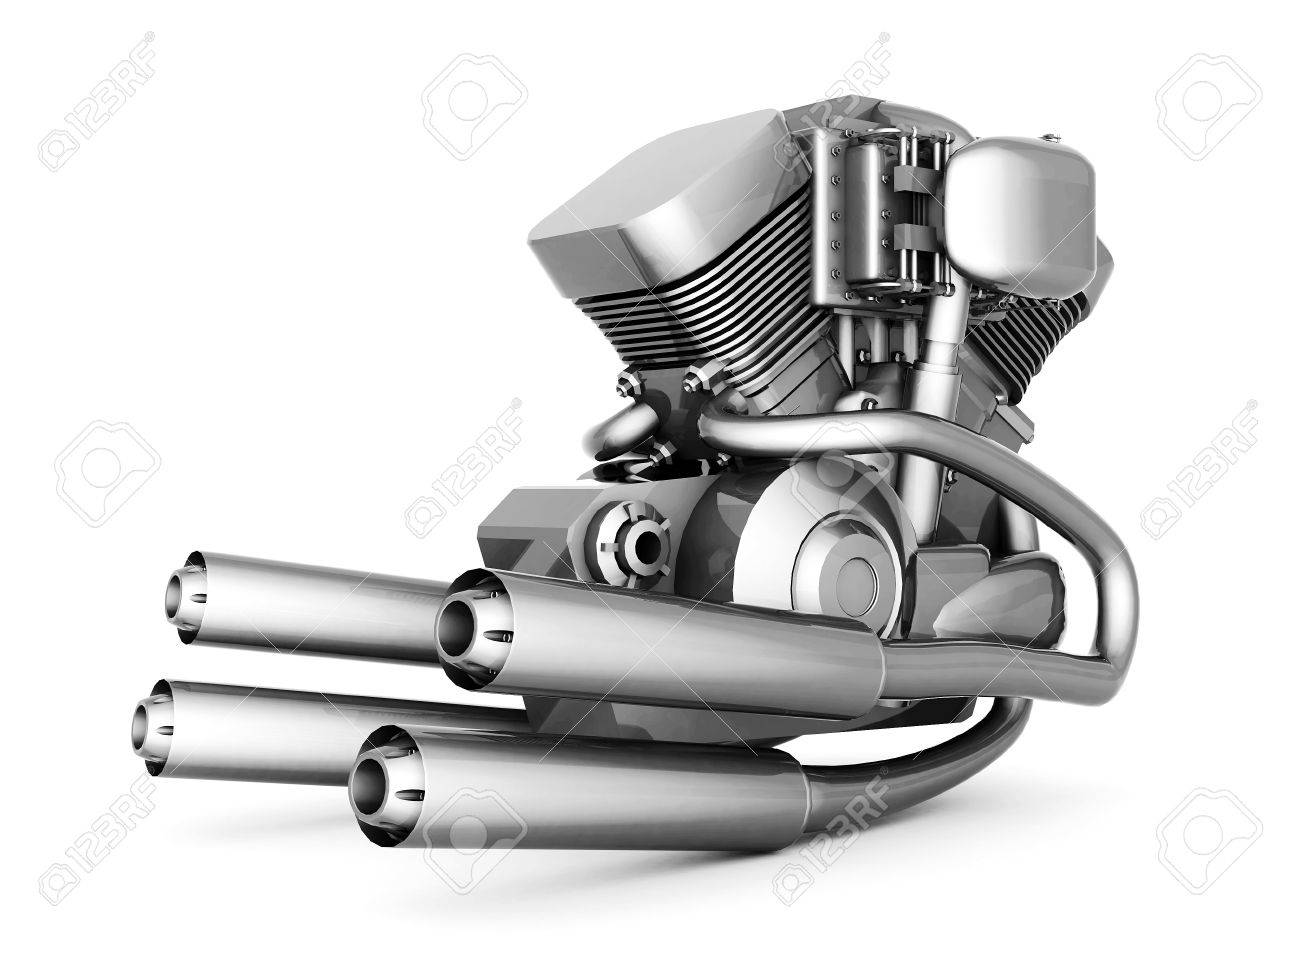 chromed motorcycle engine on a white background Stock Photo - 21926763